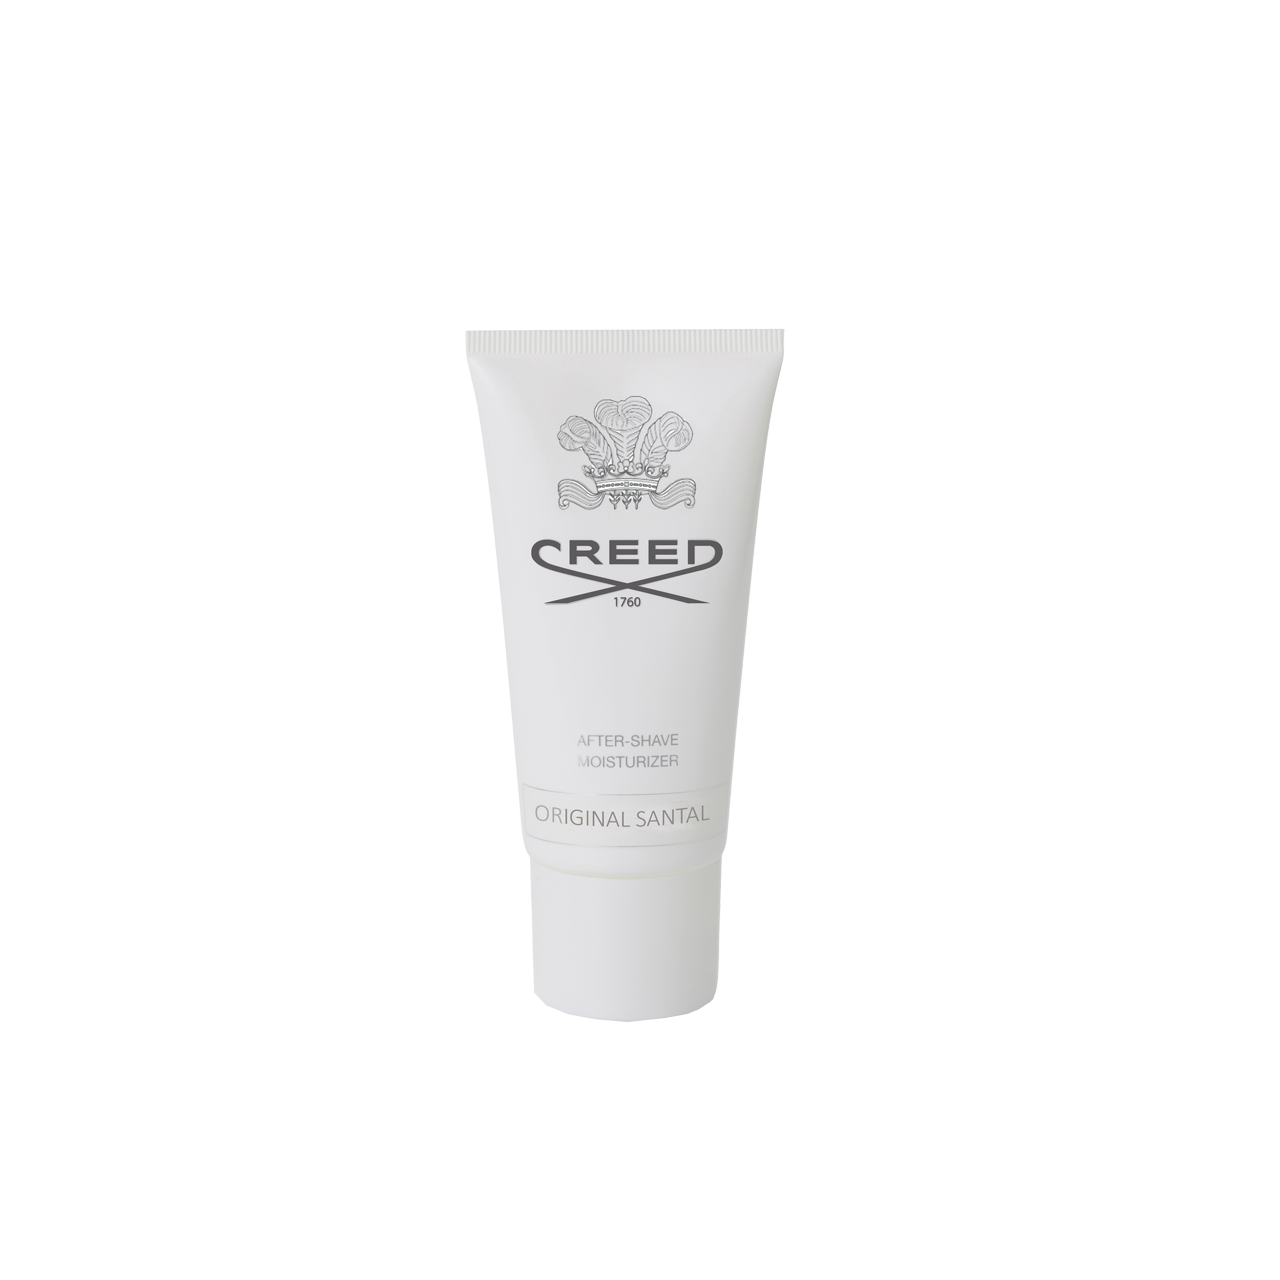 Original Santal - After Shave Balm